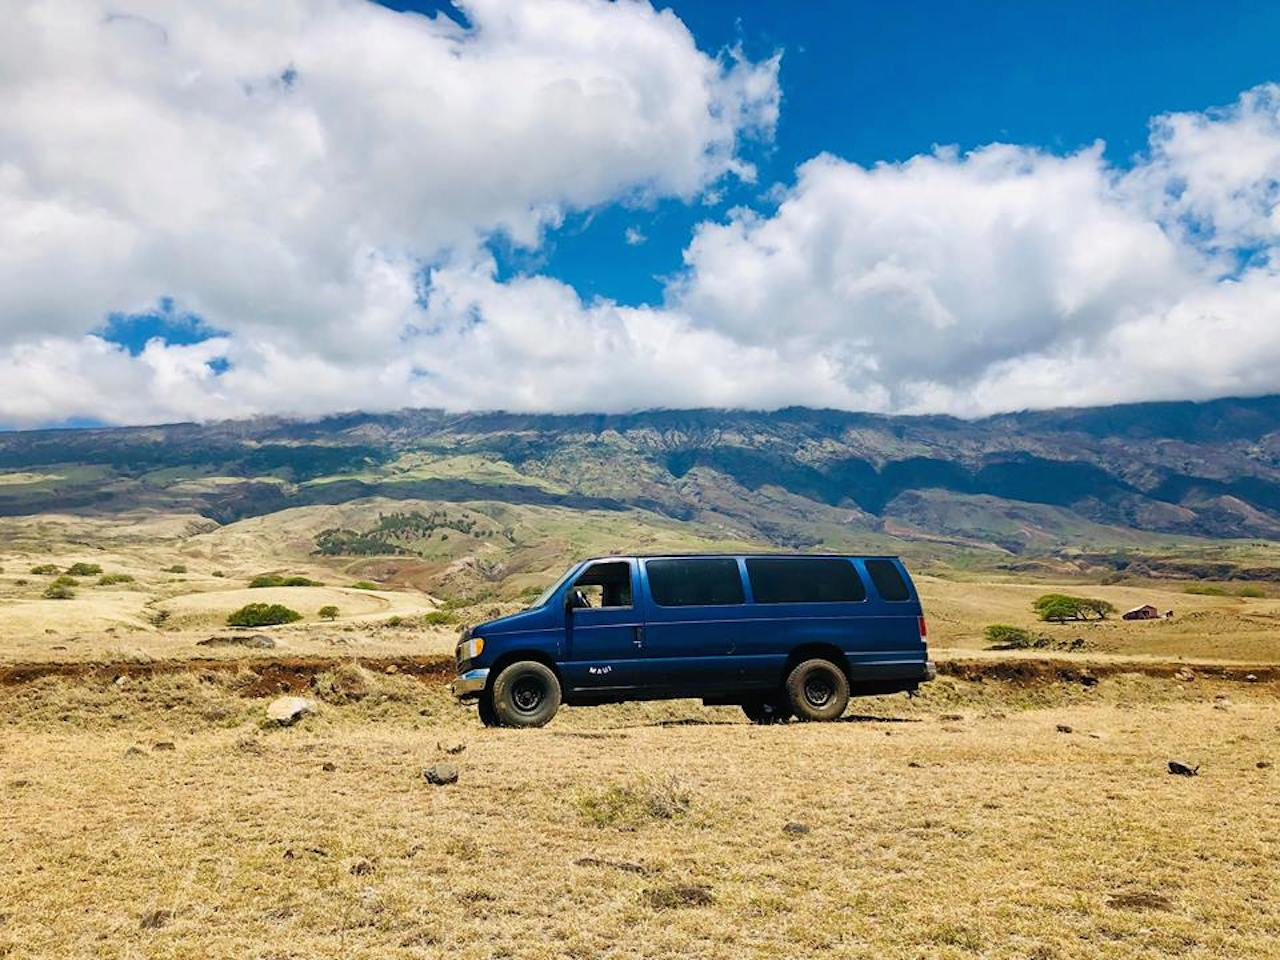 668a83d654 royal blue campervans rental maui campers vans hana highway bluesky palm  tree ford